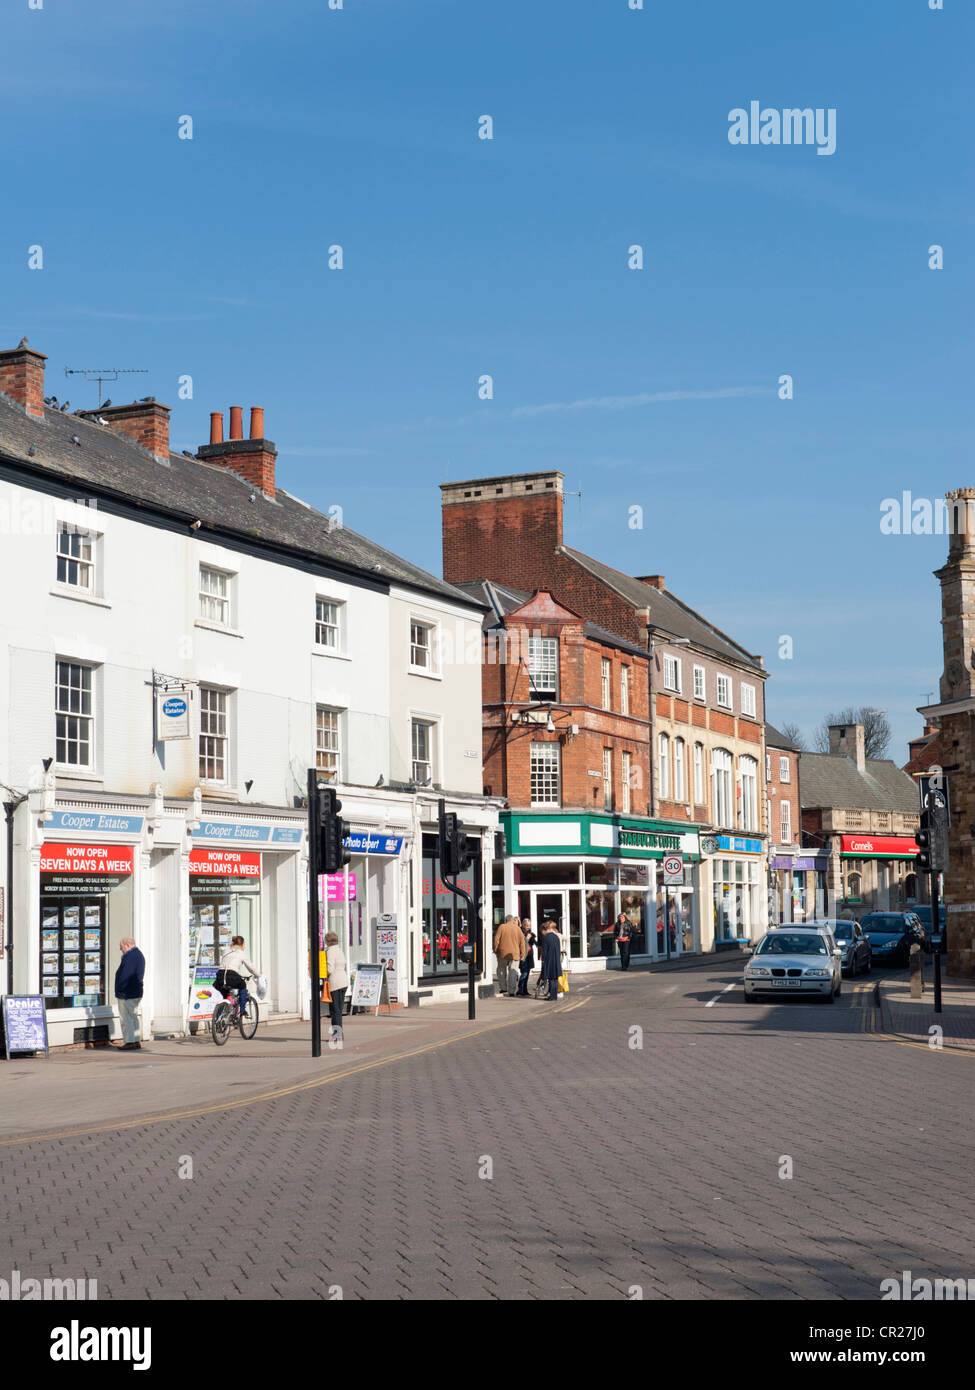 Town centre, Market Harborough, Leicestershire, England, UK - Stock Image